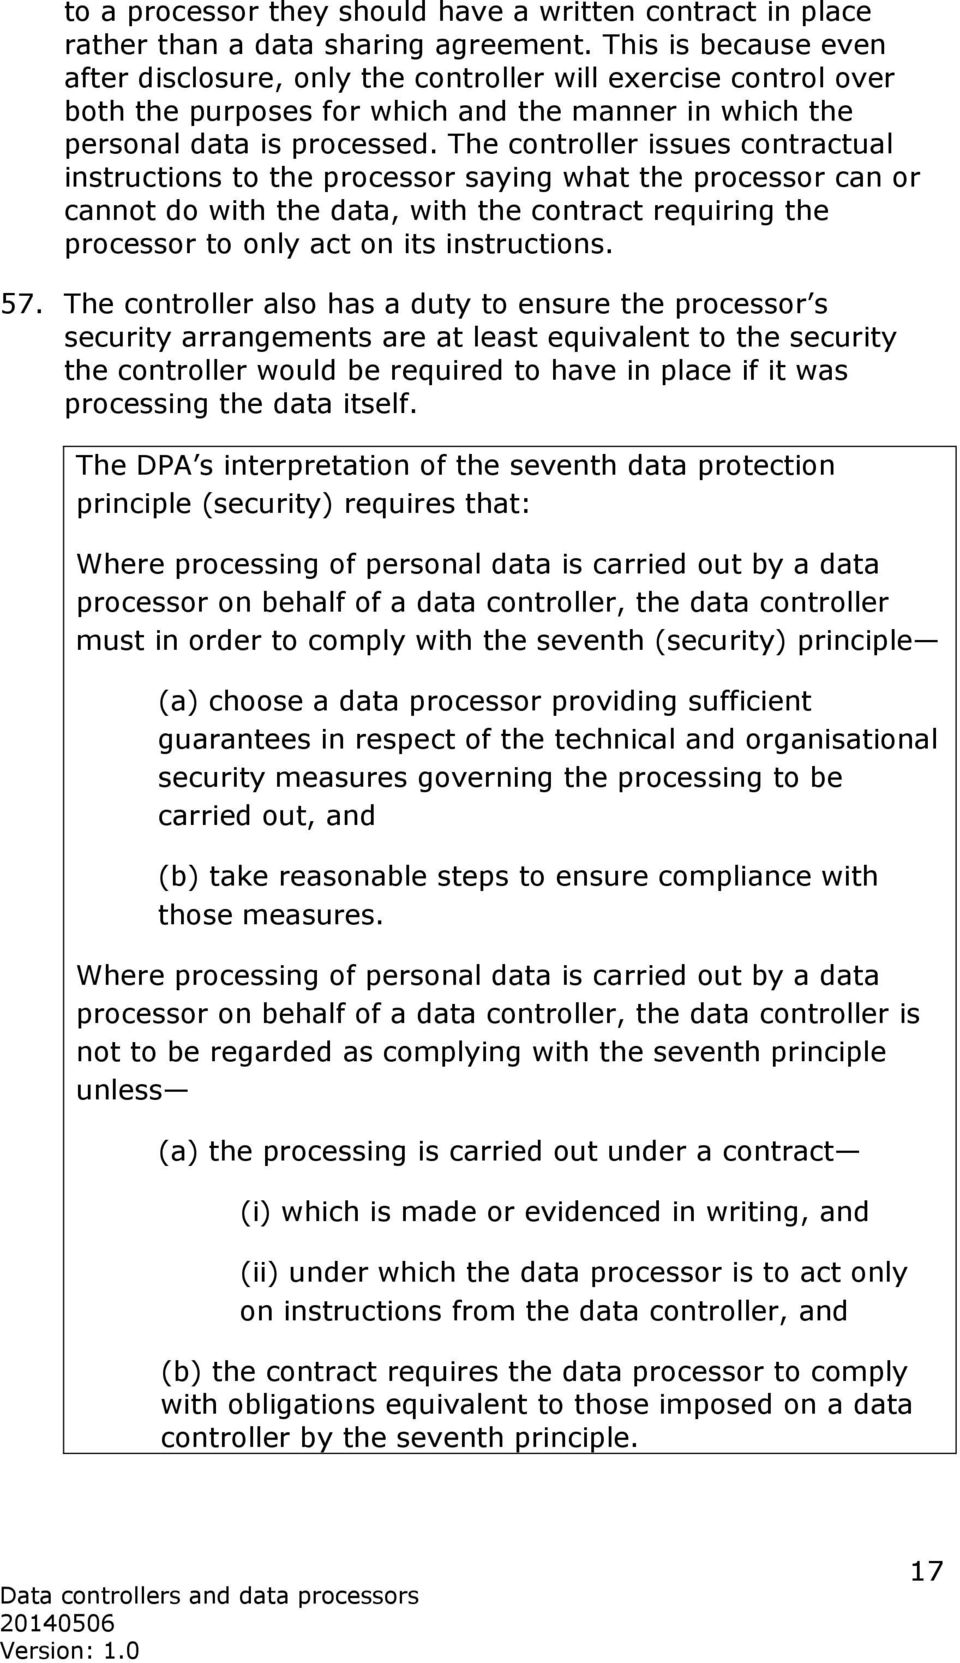 The controller issues contractual instructions to the processor saying what the processor can or cannot do with the data, with the contract requiring the processor to only act on its instructions. 57.